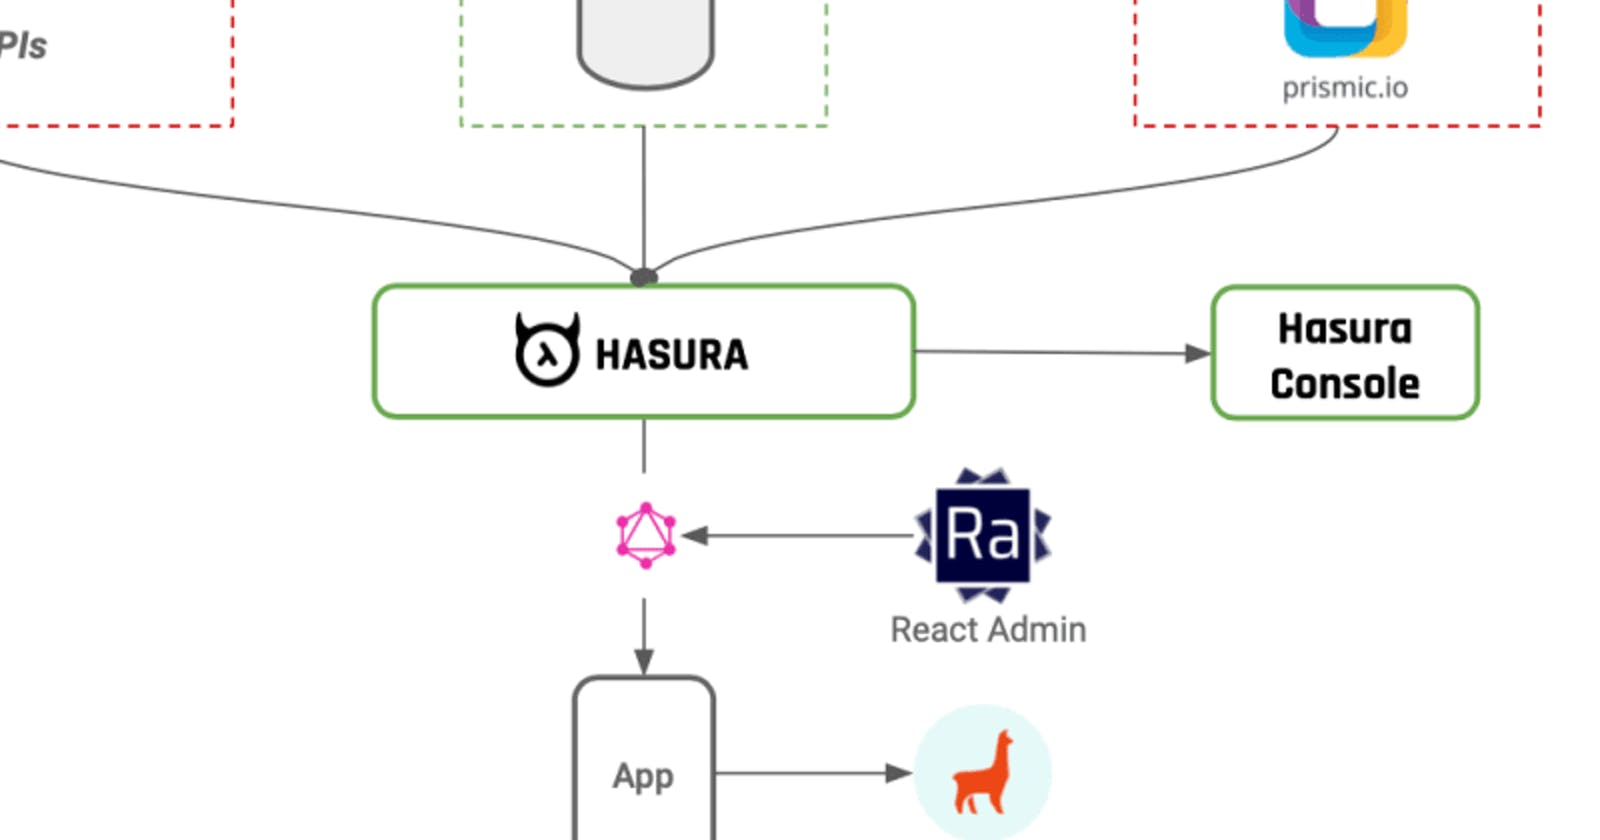 Getting started with Hasura